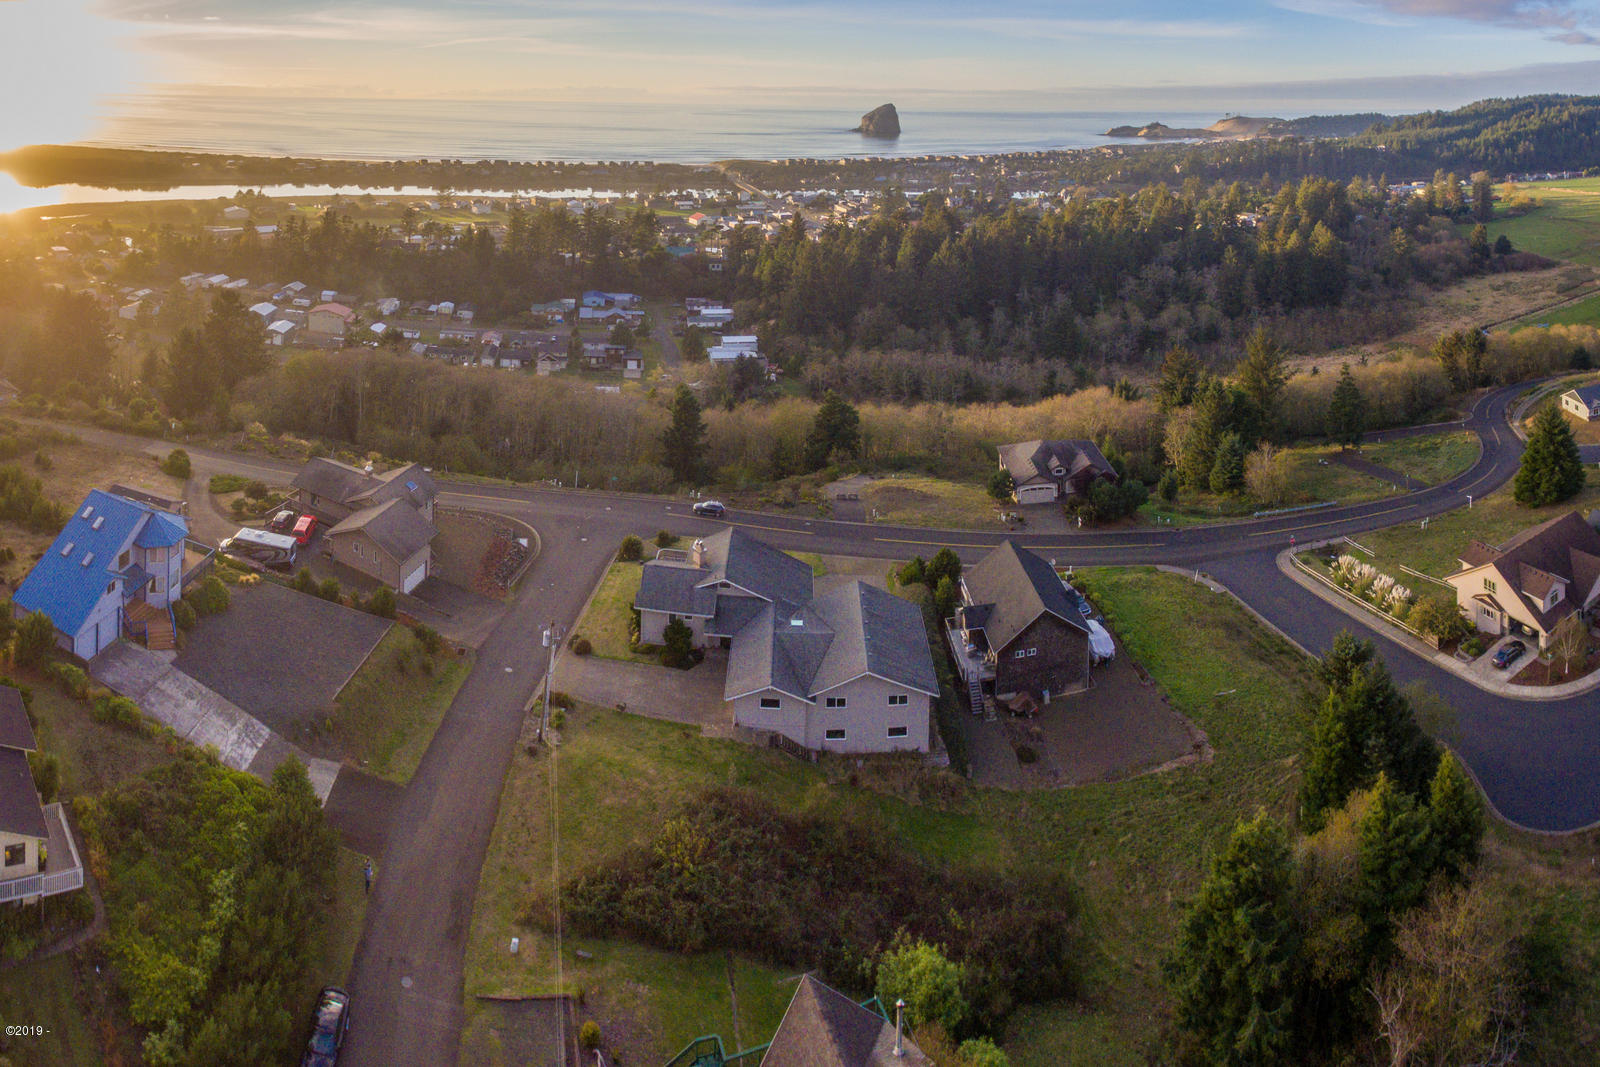 LOT 500 Dana Lane, Pacific City, OR 97135 - aerial